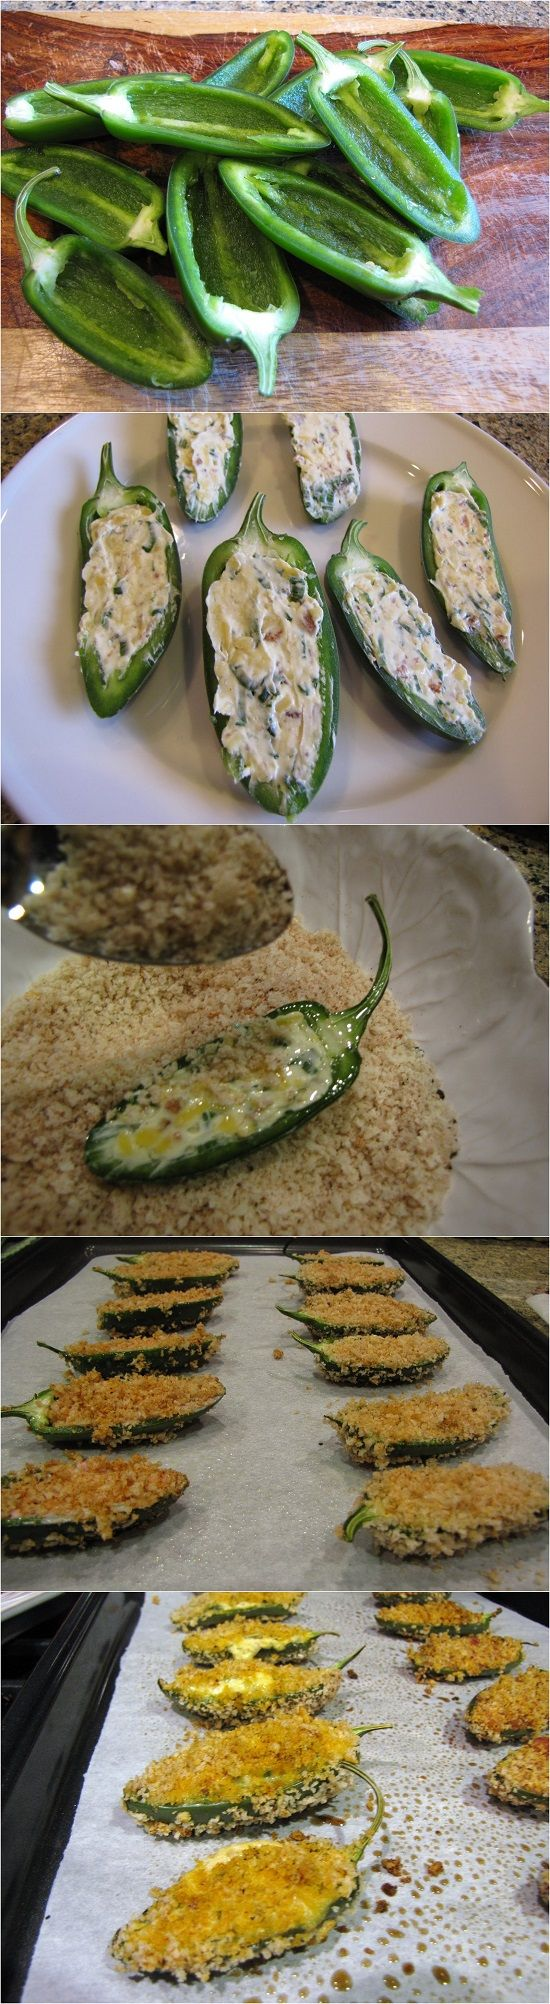 Delicious Recipes | Skinny Jalapeno Poppers